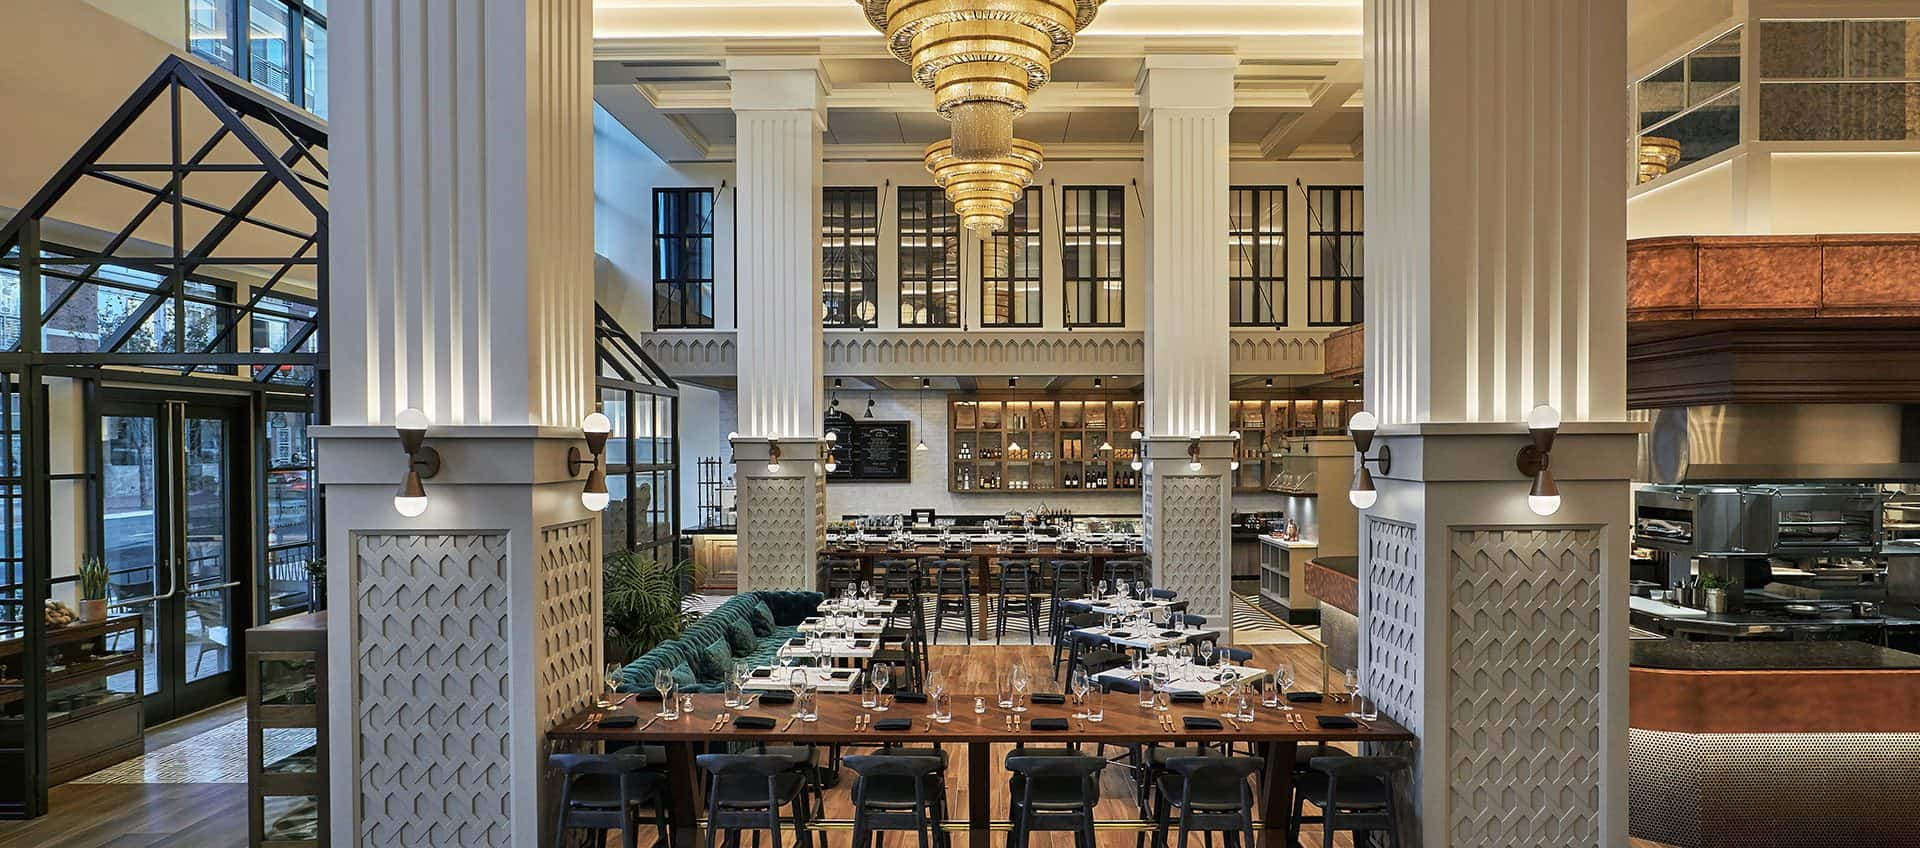 Provisional Kitchen Cafe Amp Mercantile San Diego Pendry